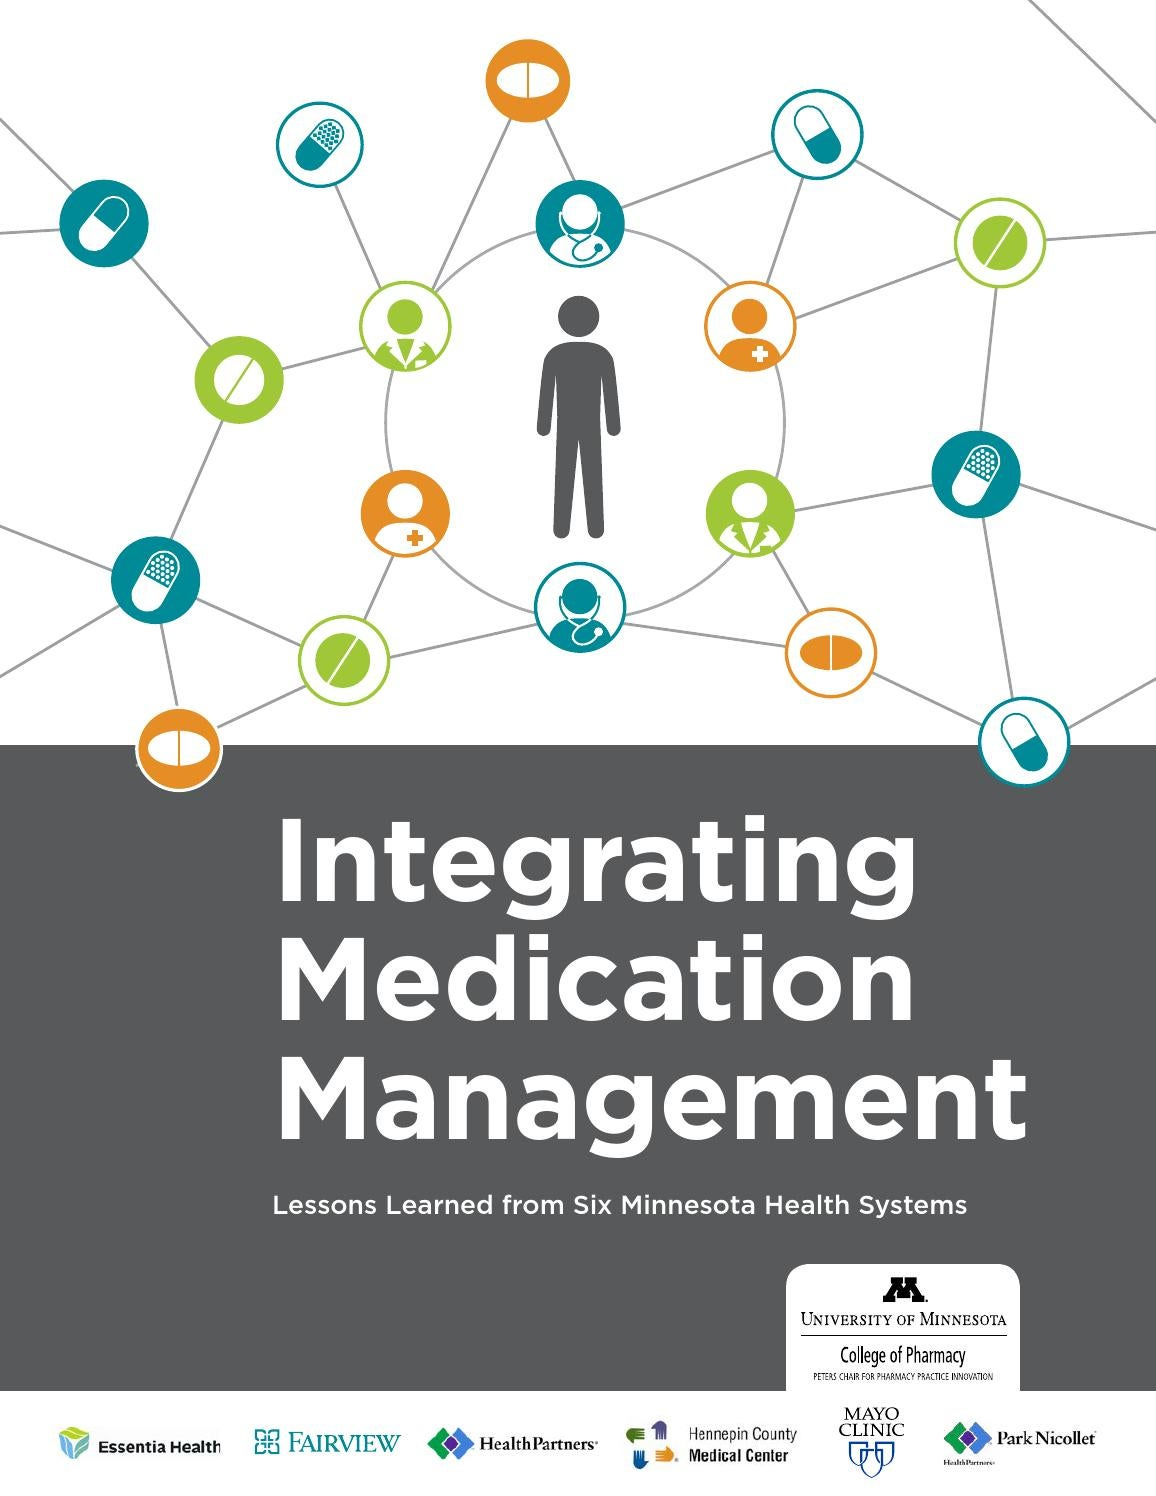 Integrating Medication Management: Lessons Learned from Six